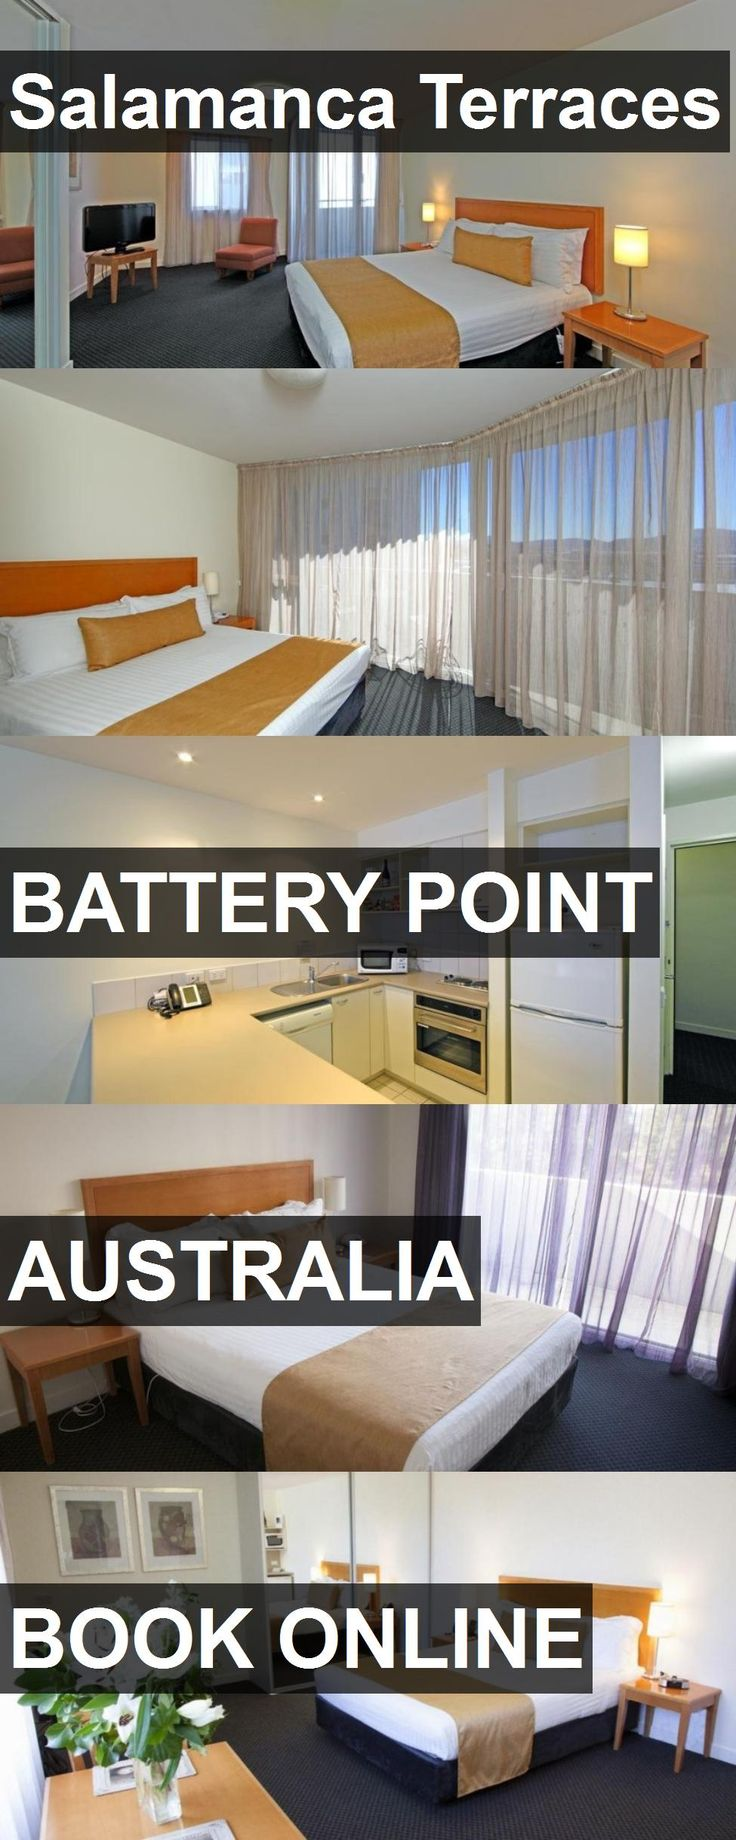 Hotel Salamanca Terraces in Battery Point, Australia. For more information, photos, reviews and best prices please follow the link. #Australia #BatteryPoint #travel #vacation #hotel